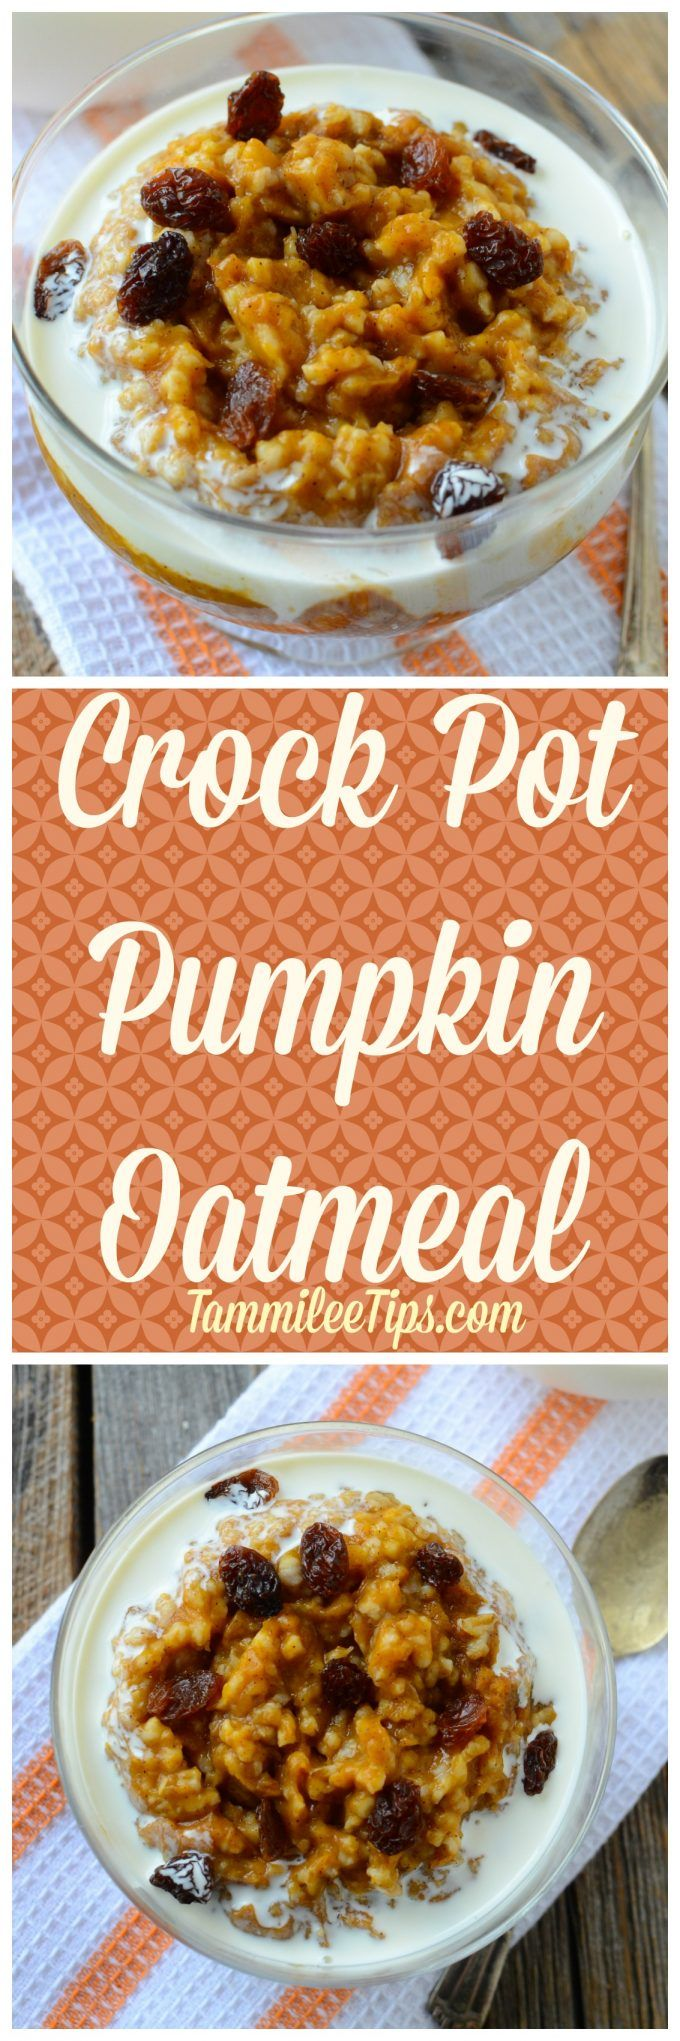 The perfect crock pot pumpkin oatmeal recipe for Fall! The slow cooker recipe is the perfect family breakfast. Add in brown sugar, apple cinnamon, rolled oats, almonds, maple syrup or any of your favorite oatmeal toppings.  via @tammileetips